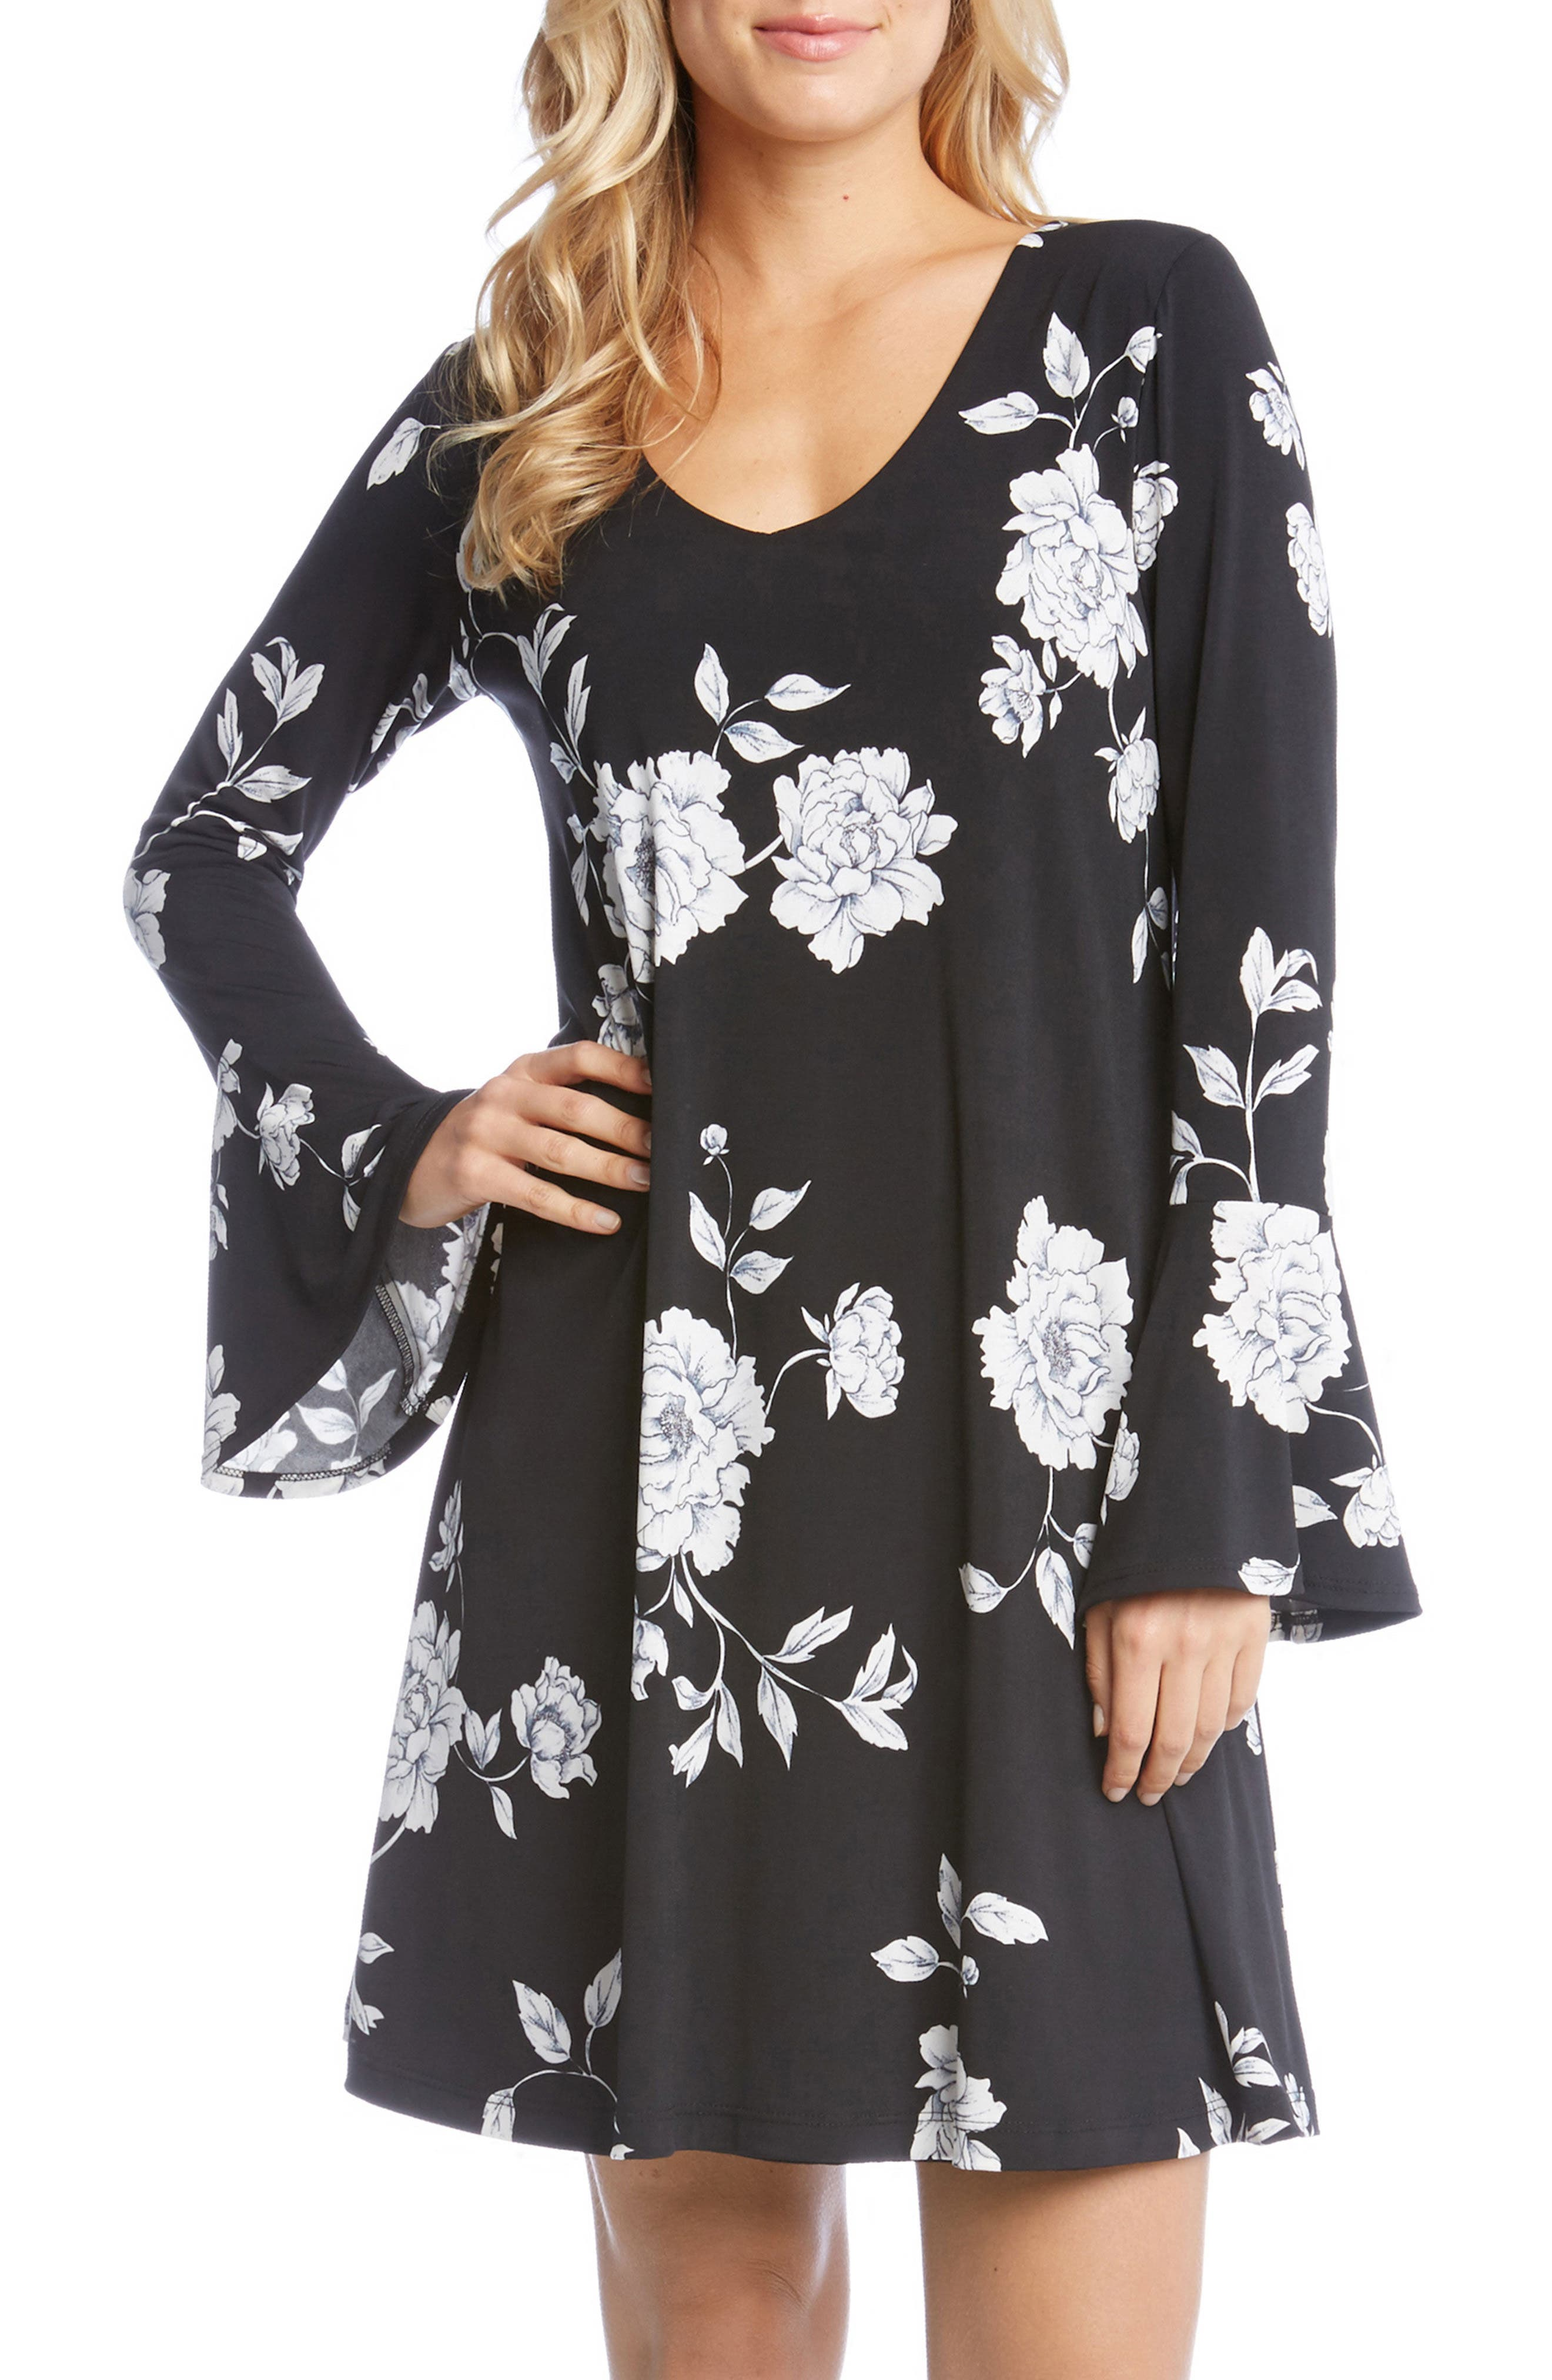 Taylor Bell Cuff Floral A-Line Dress,                         Main,                         color, Flower